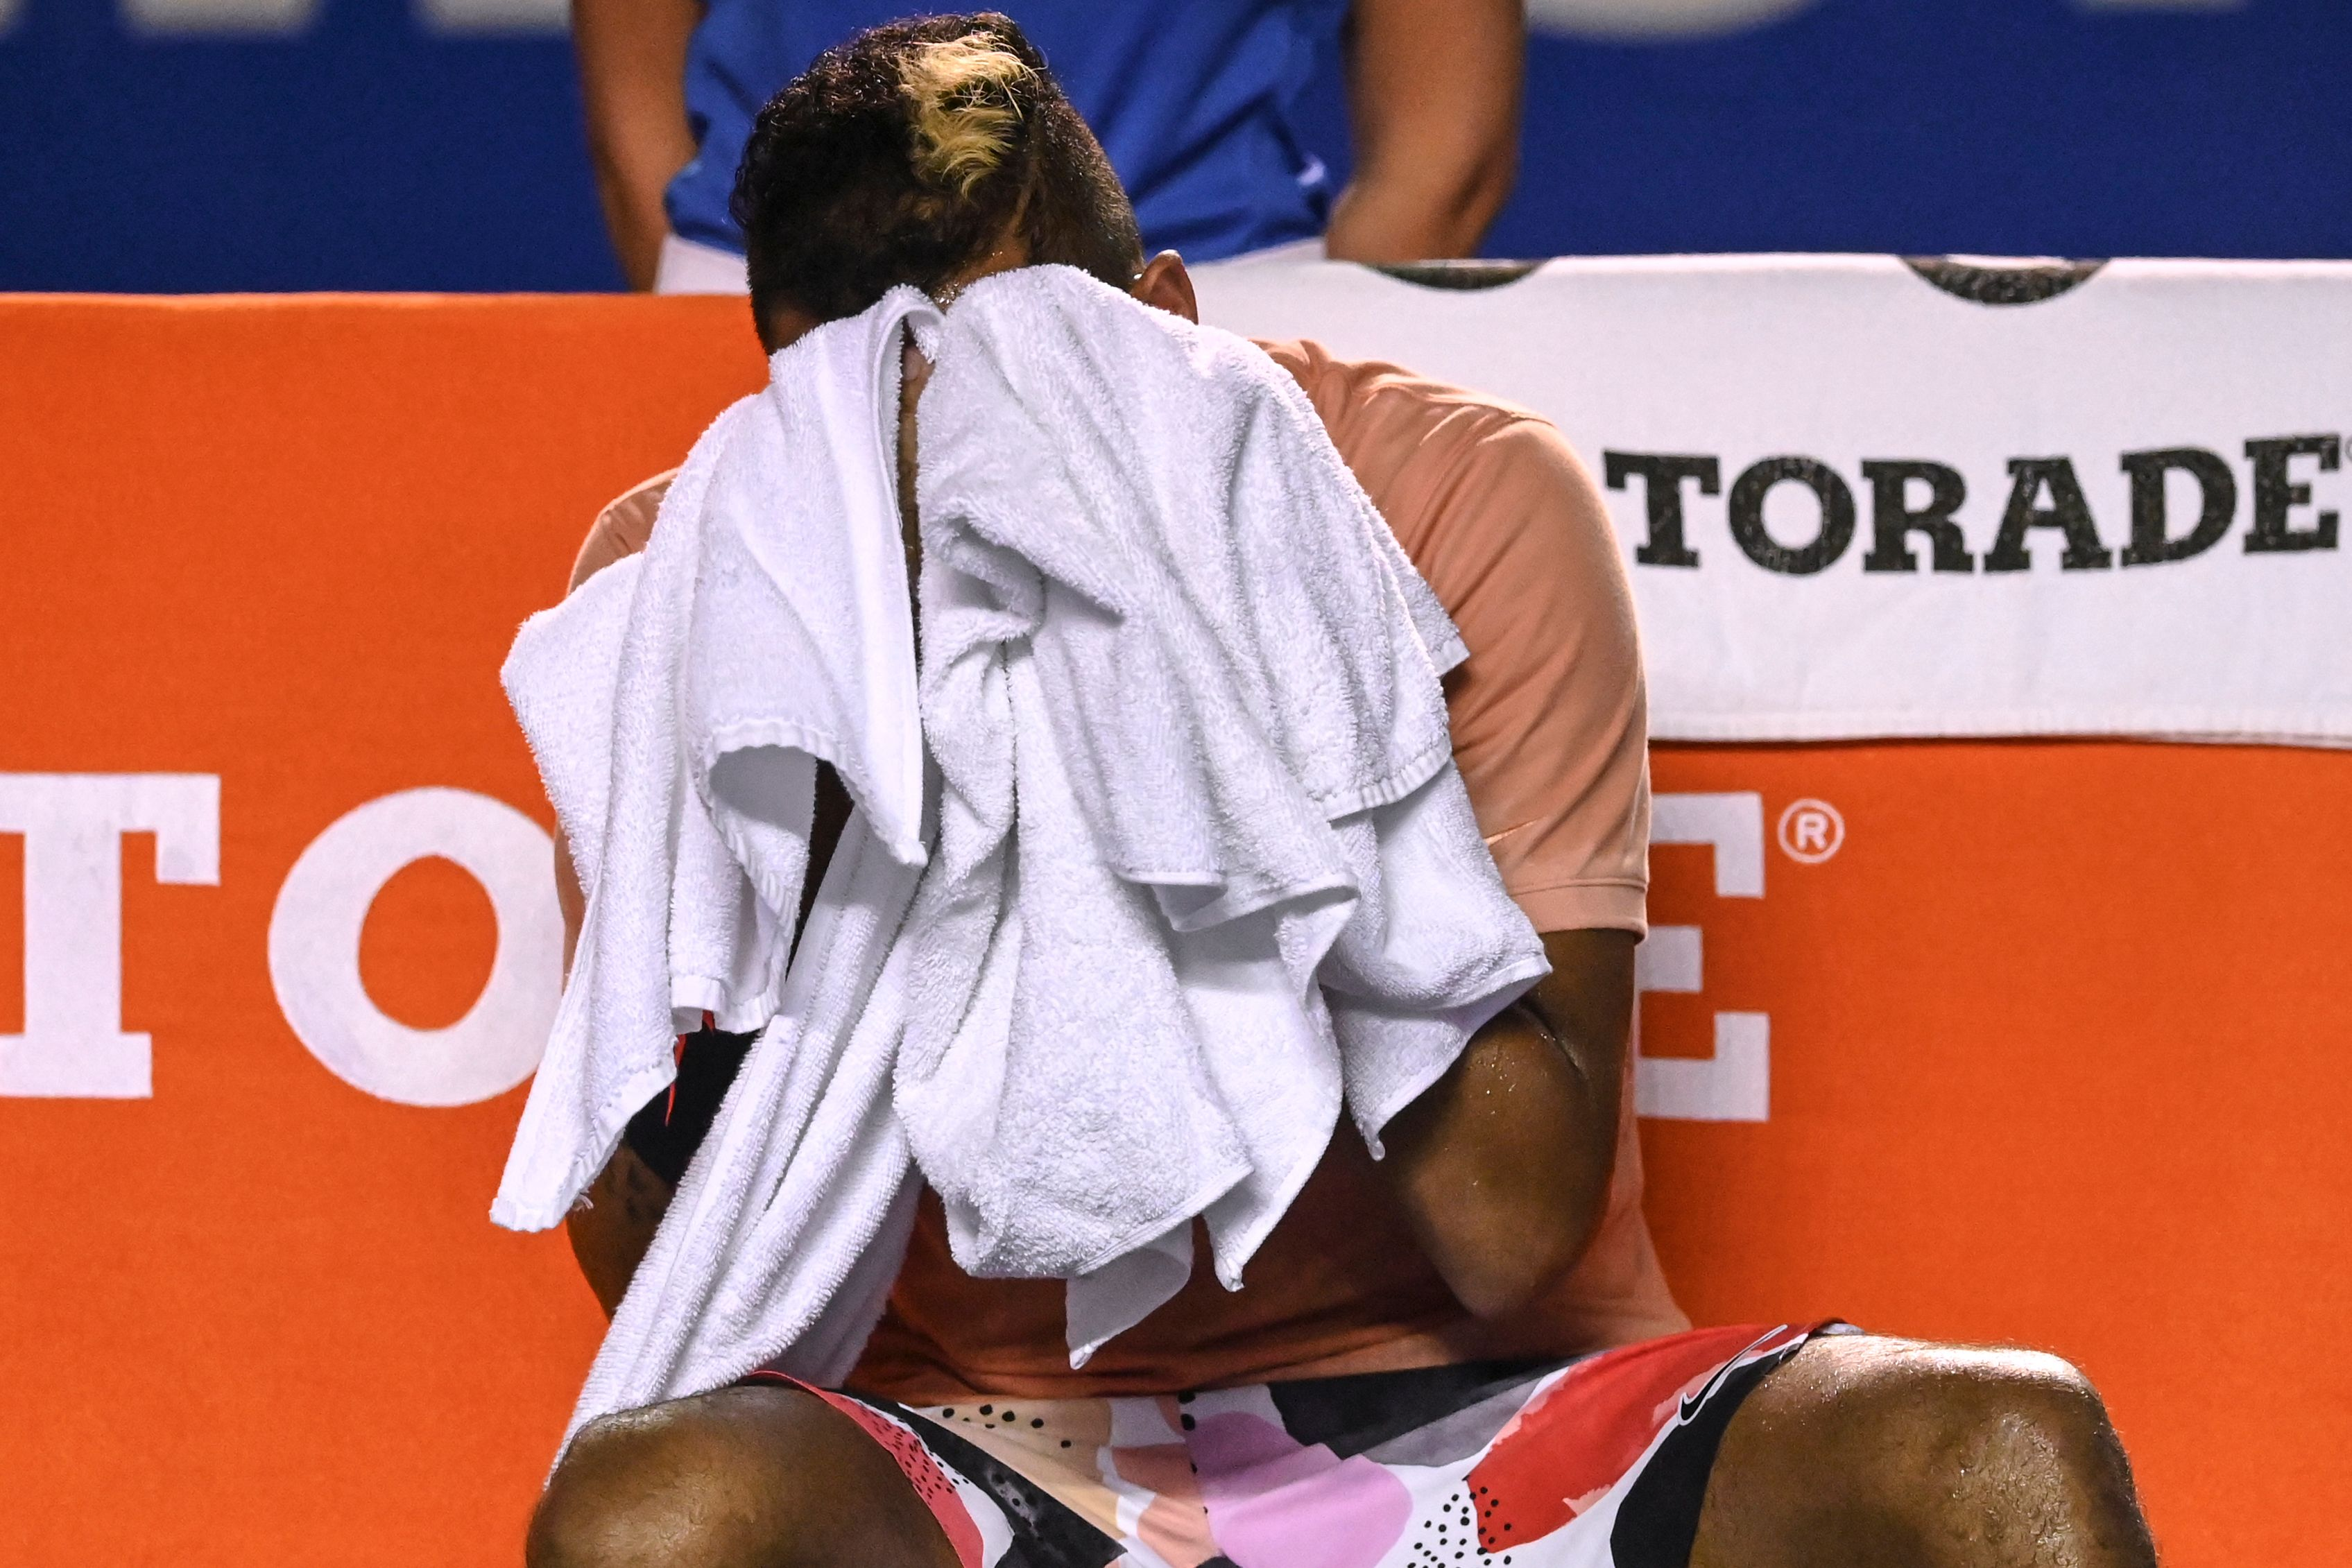 Tennis star Nick Kyrgios gives expletive-laden media conference after being booed off court